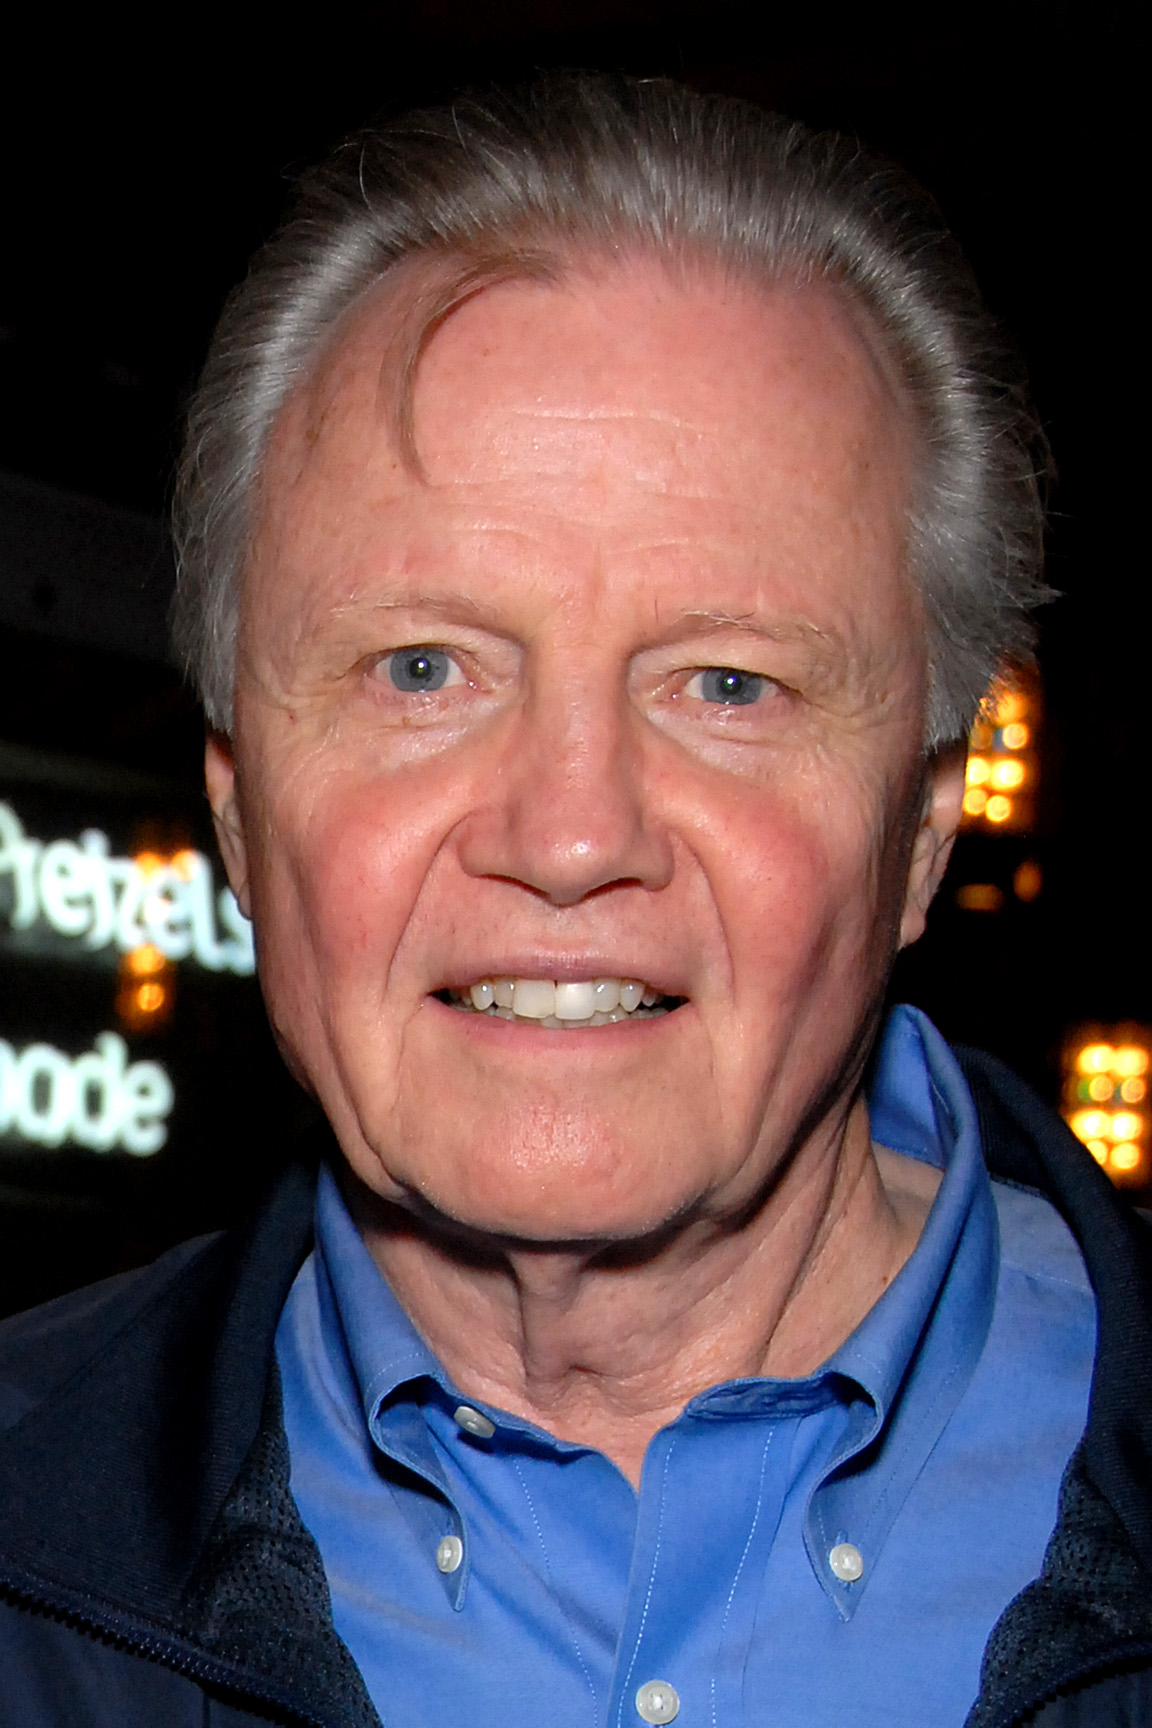 Jon Voight Jon Voight Wikipedia the free encyclopedia